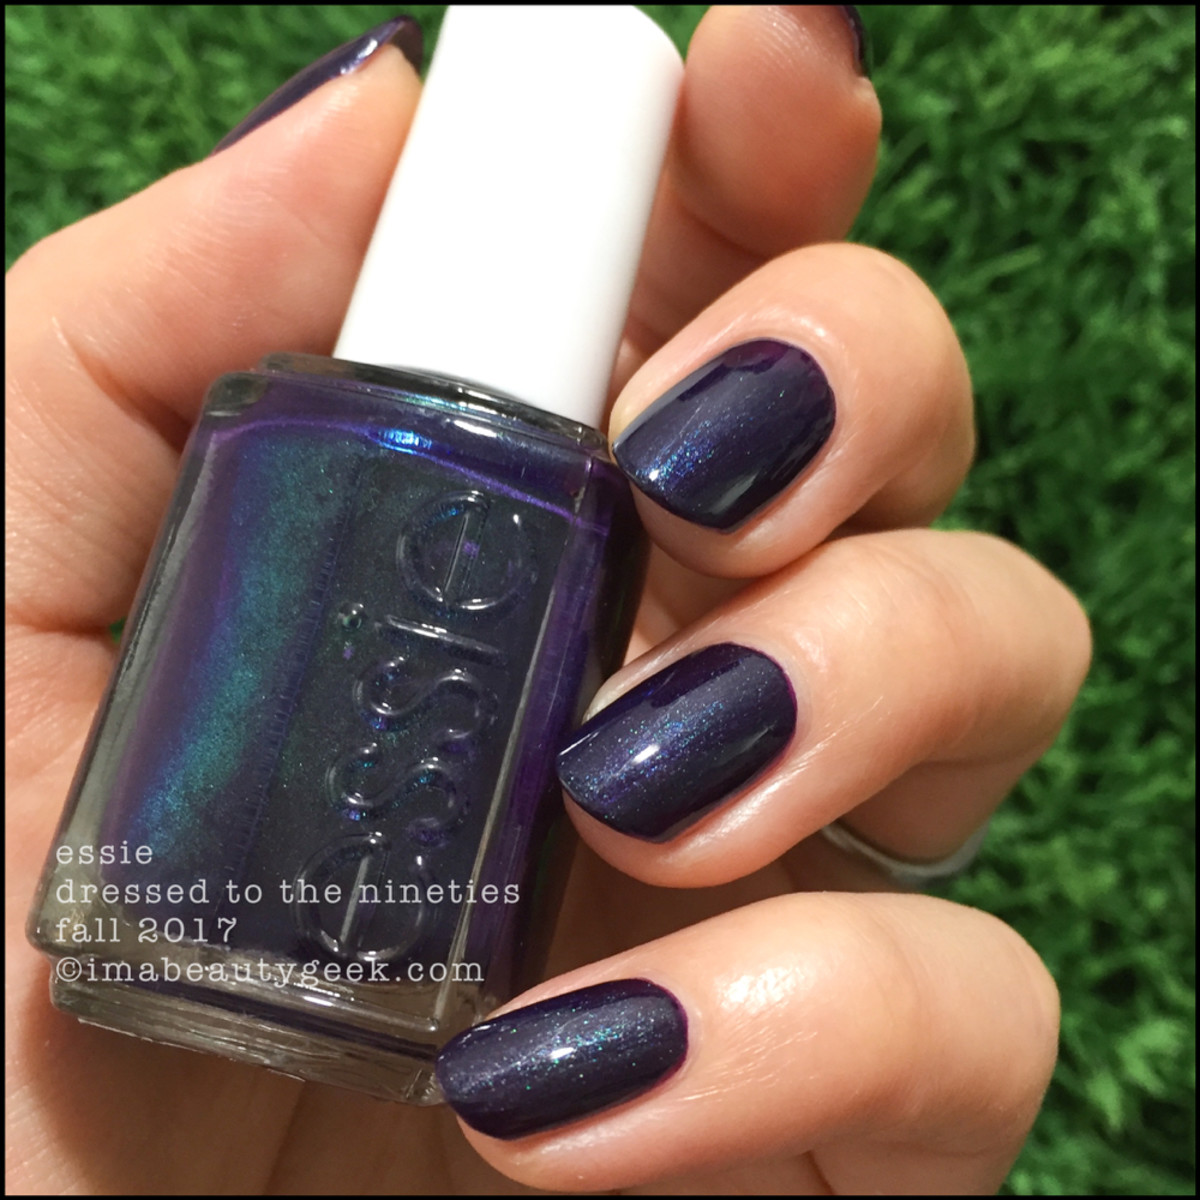 Essie Dressed to the Nineties outside - Essie Fall 2017 Collection Swatches Review